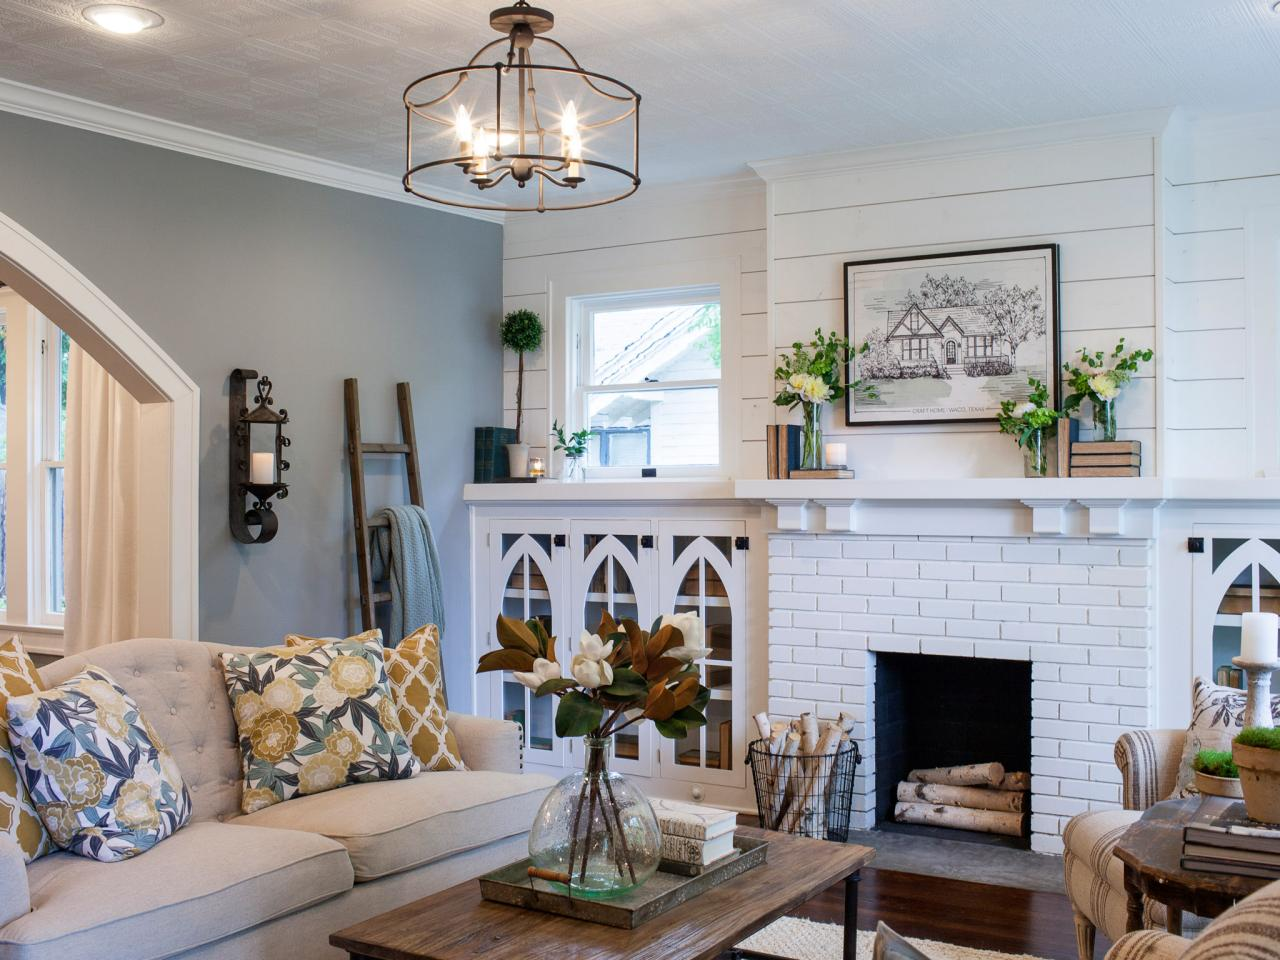 Joanna Gaines Home Design chip and joanna gaines house tour fixer upper farmhouse Photos Hgtvs Fixer Upper With Chip And Joanna Gaines Hgtv